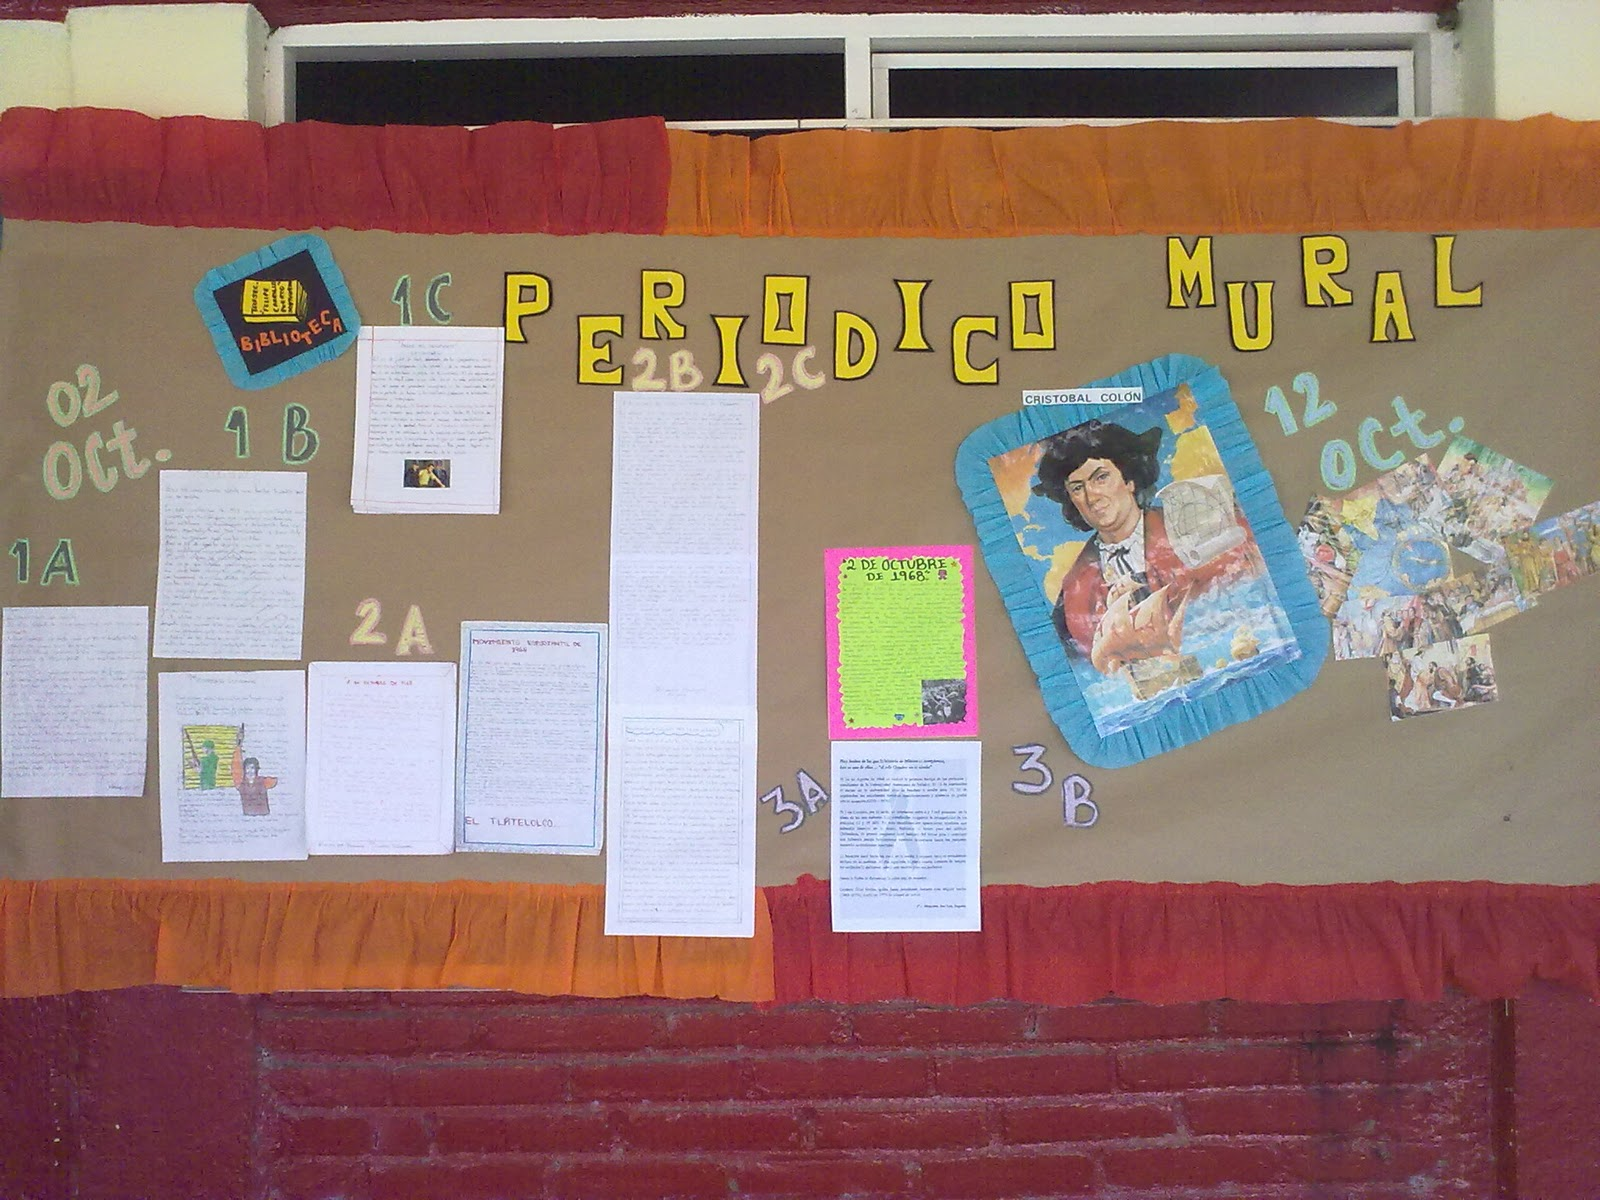 Bibliotecarrillo931 octubre 2010 for Diario mural en ingles